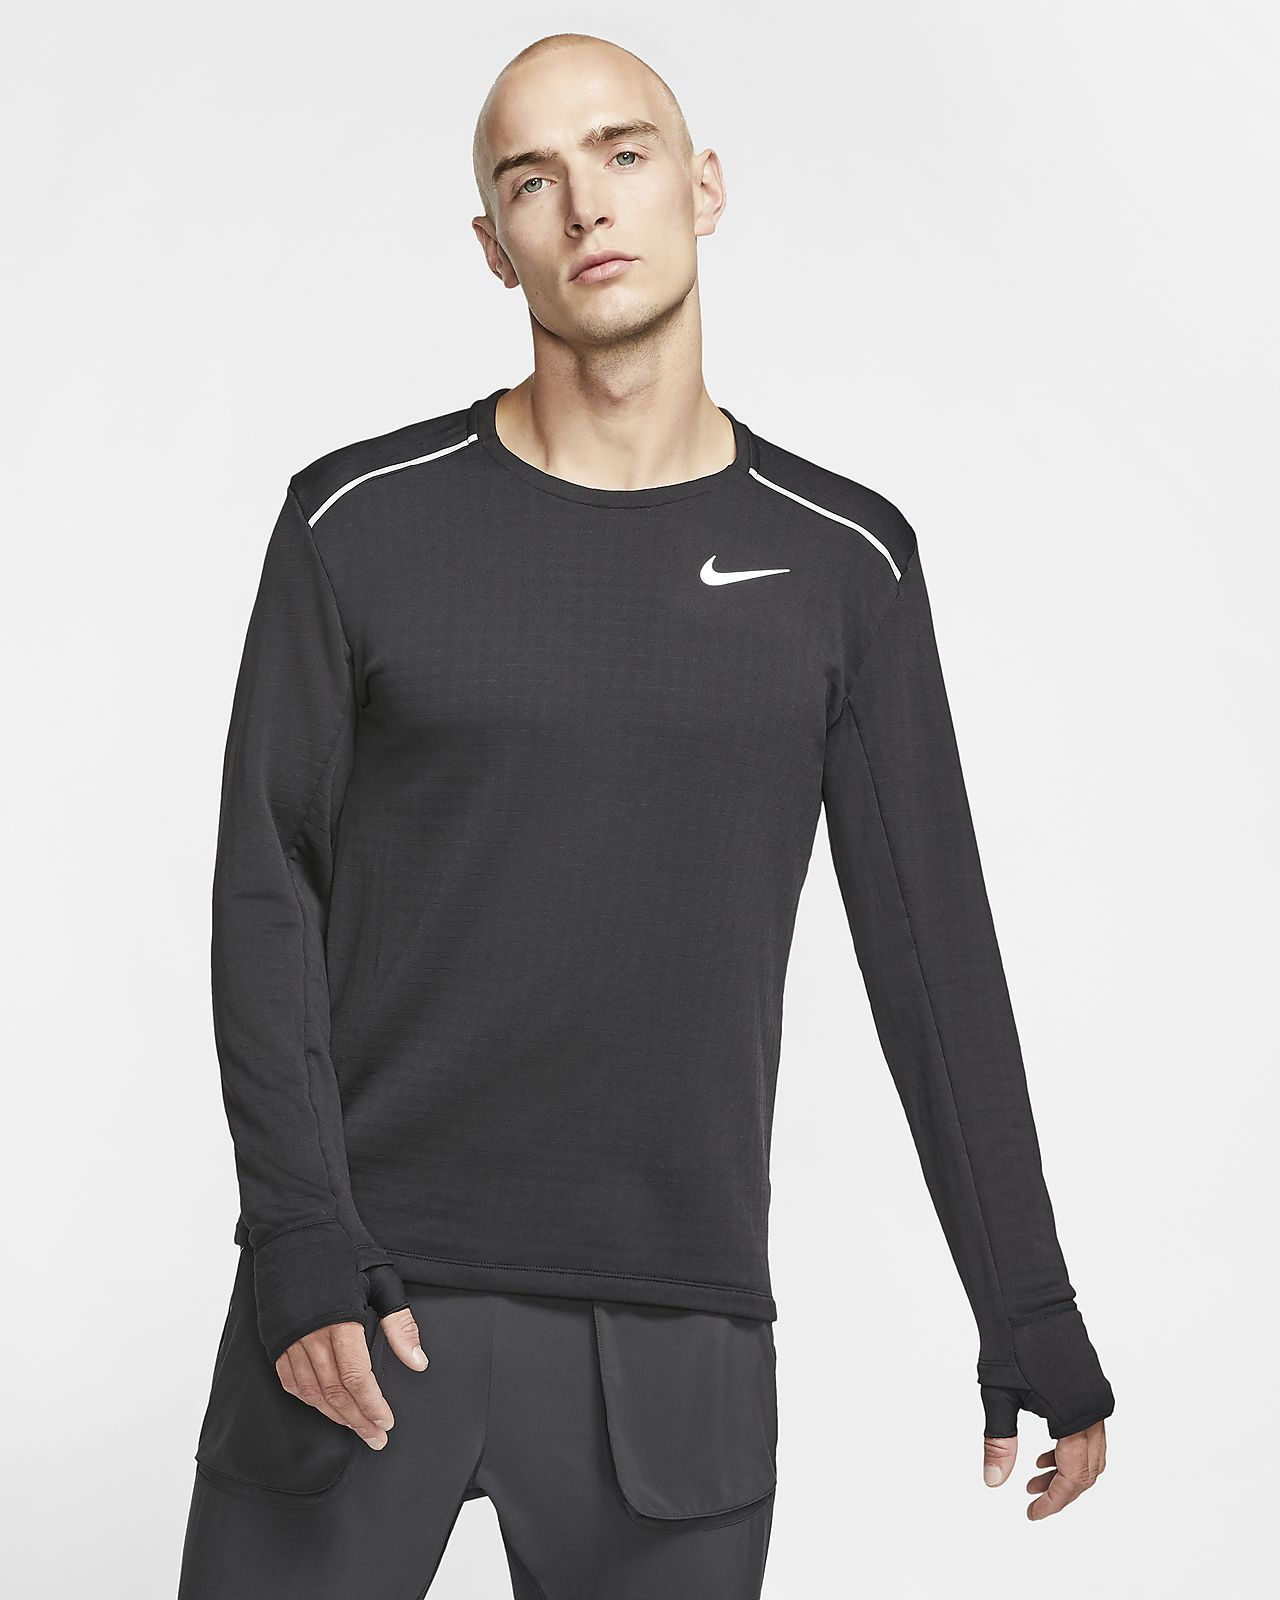 Nike Therma Sphere Element 3.0 Men's Long-Sleeved Running Top